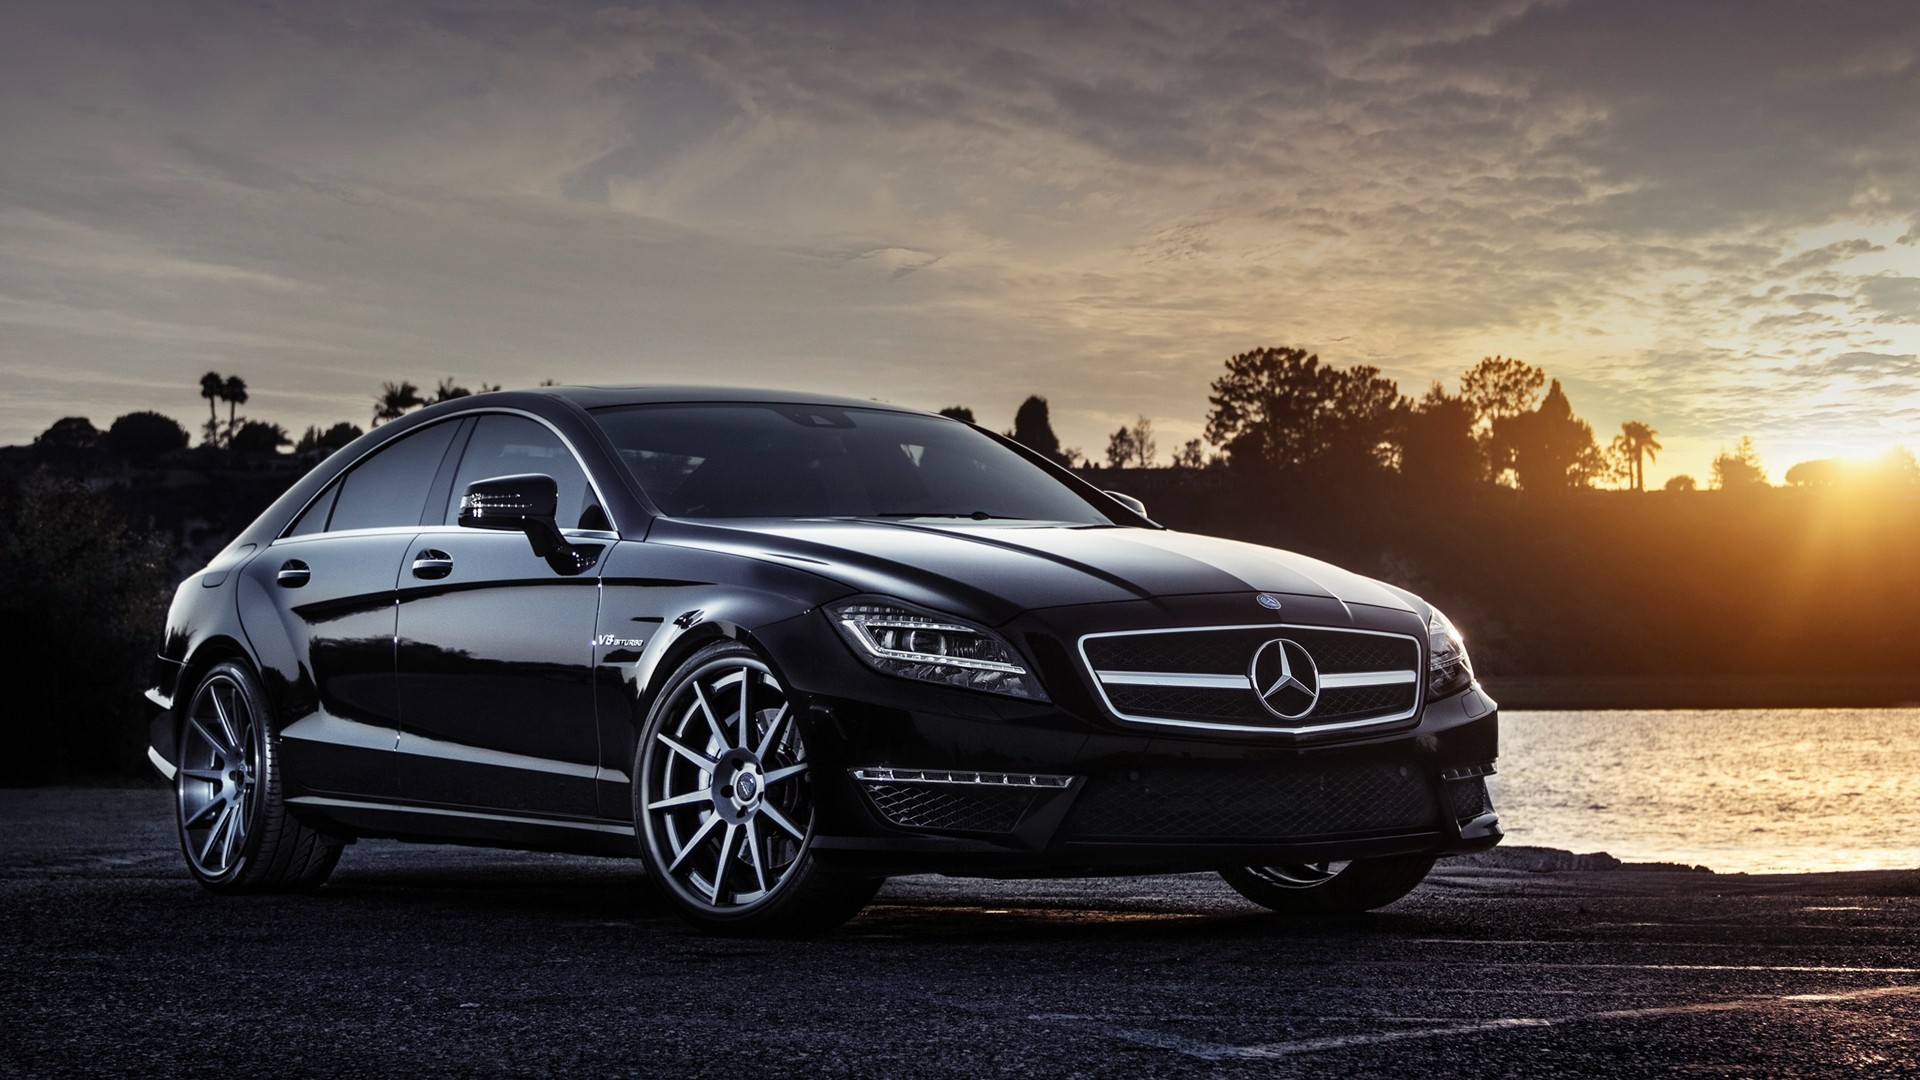 Benz Drift Car >> Black Mercedes wallpaper | 1920x1080 | #16297